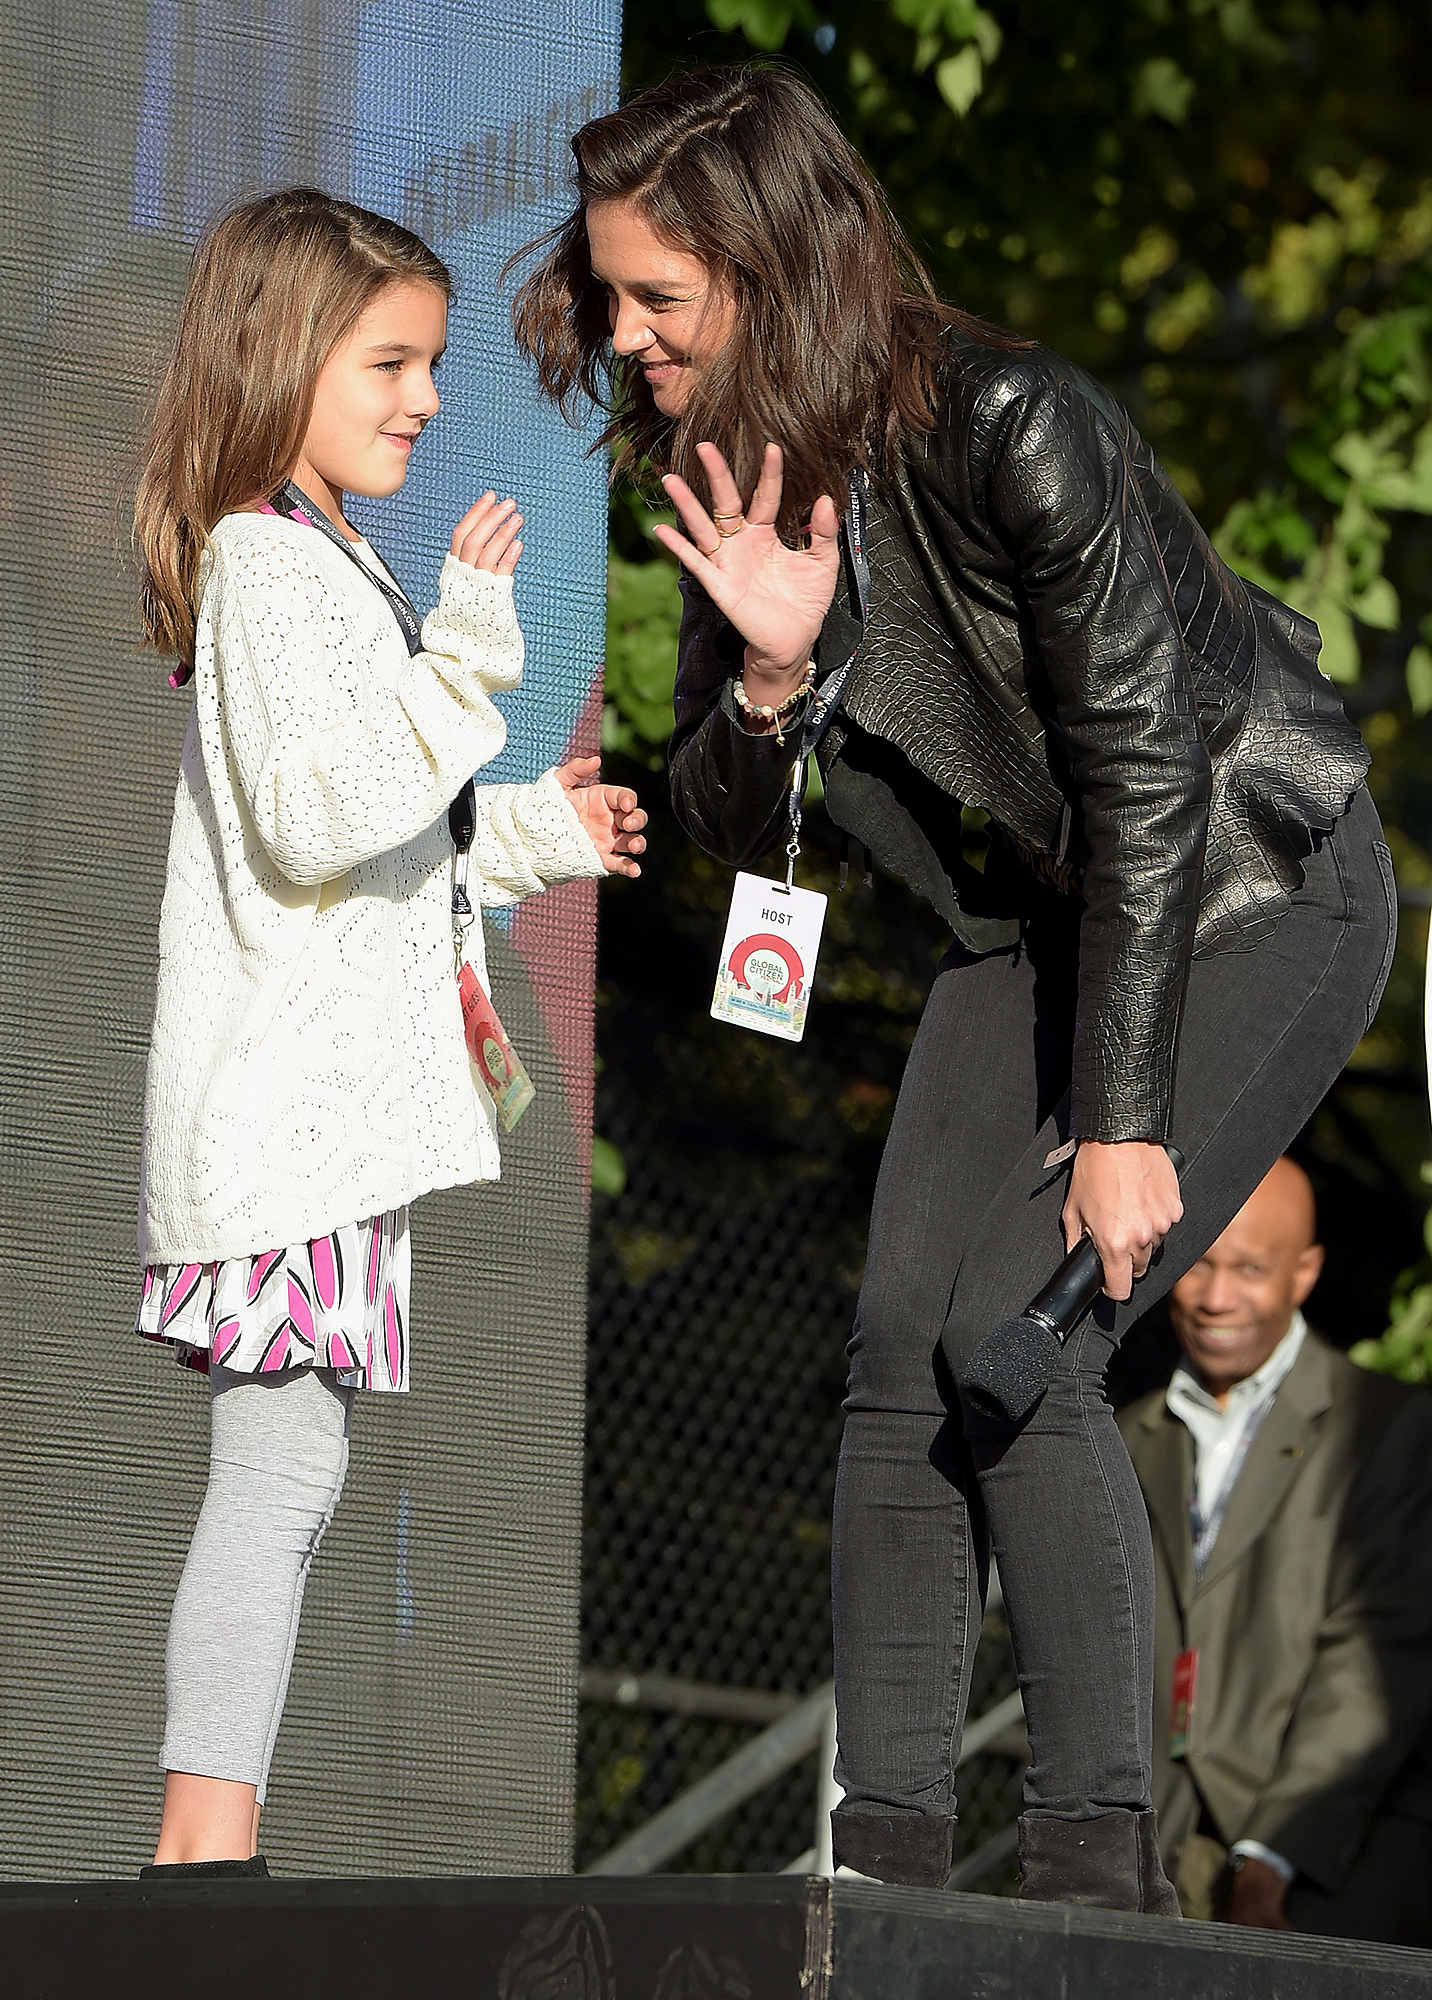 katie-holmes-suri-cruise-Fan-Favorite - Suri tagged along to the Global Citizen Festival in NYC's Central Park back in September 2015, even joining the Miss Meadows actress on stage and waving to the crowd!